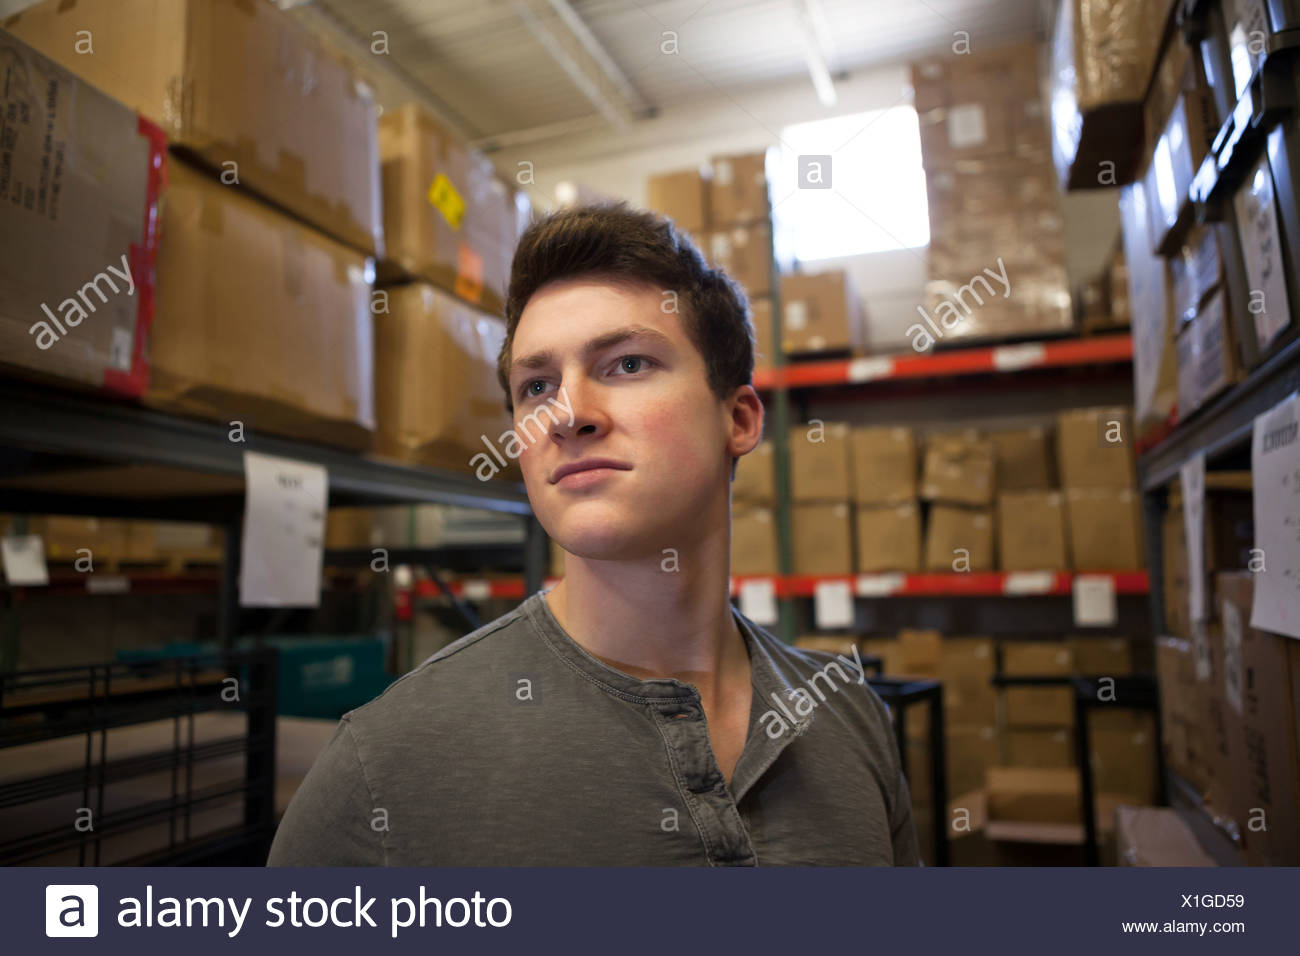 Worker standing in warehouse - Stock Image